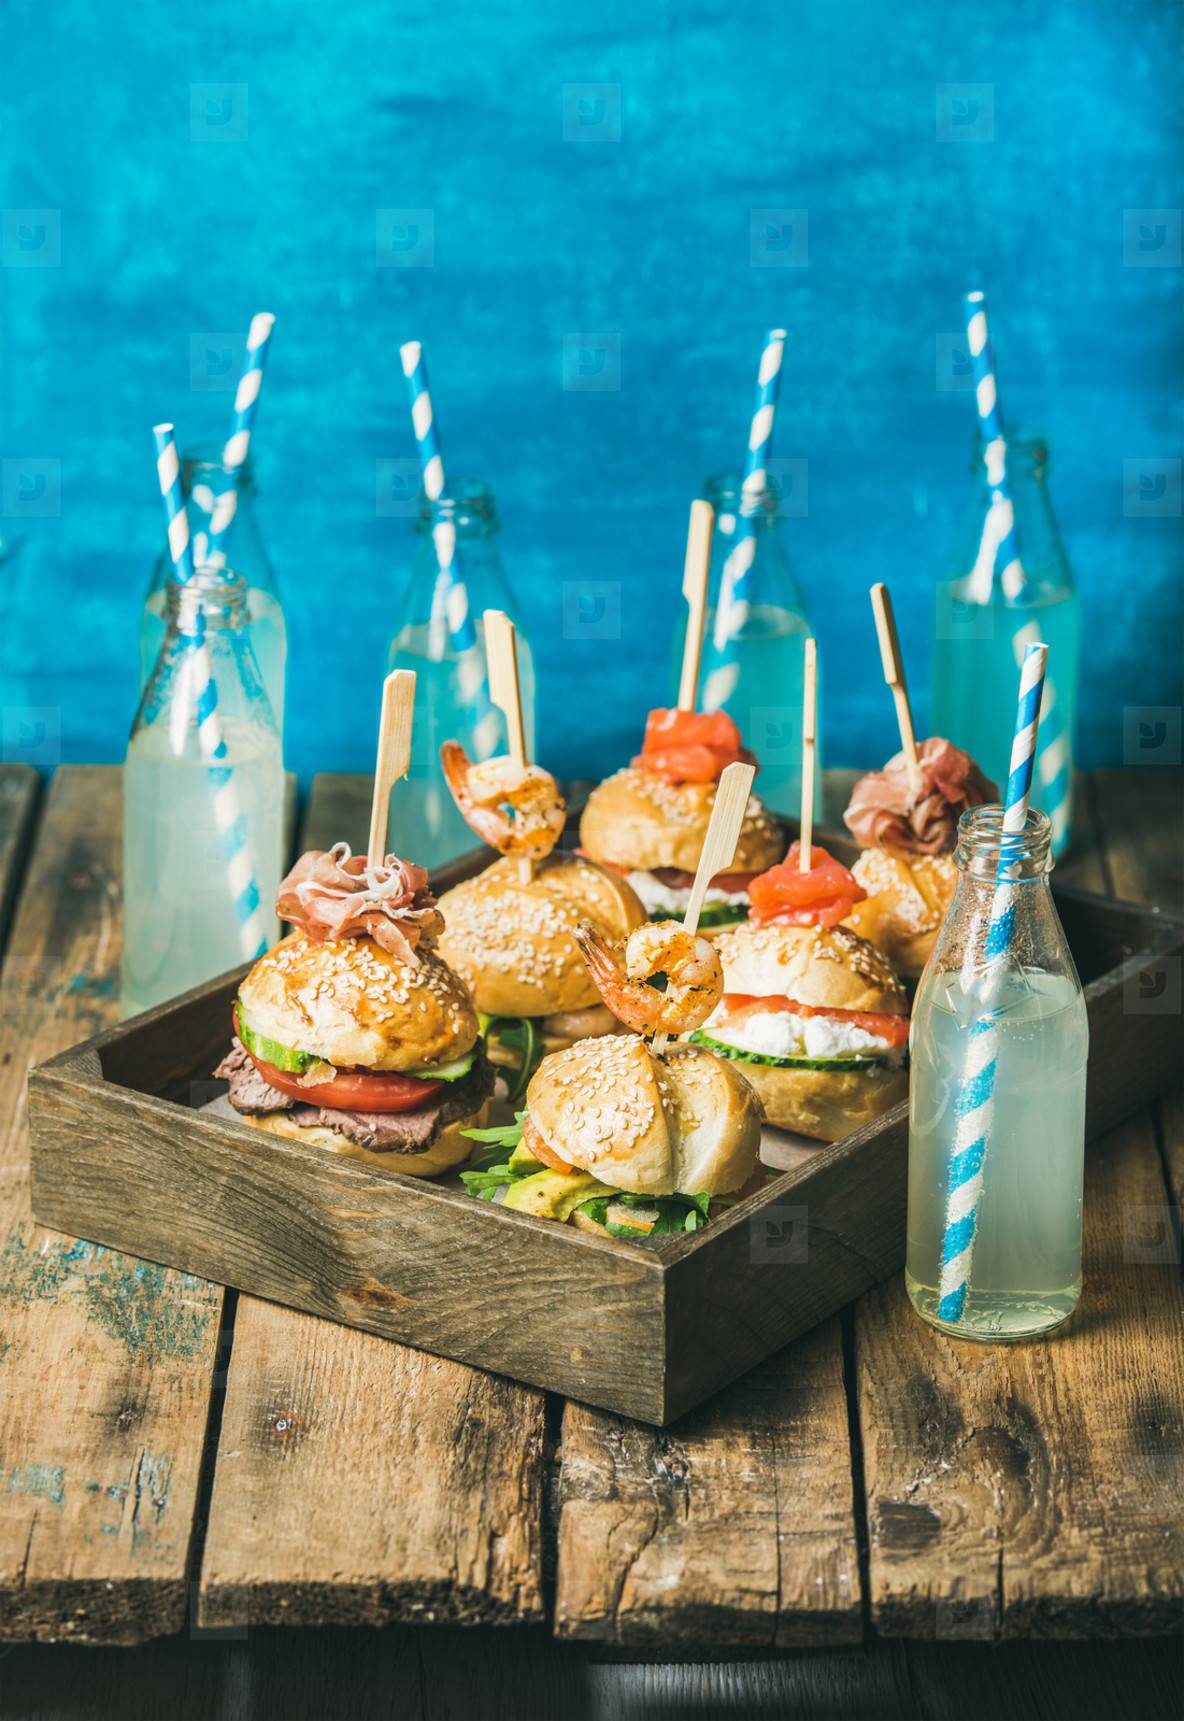 Different burgers with sticks in wooden tray and fresh lemonade